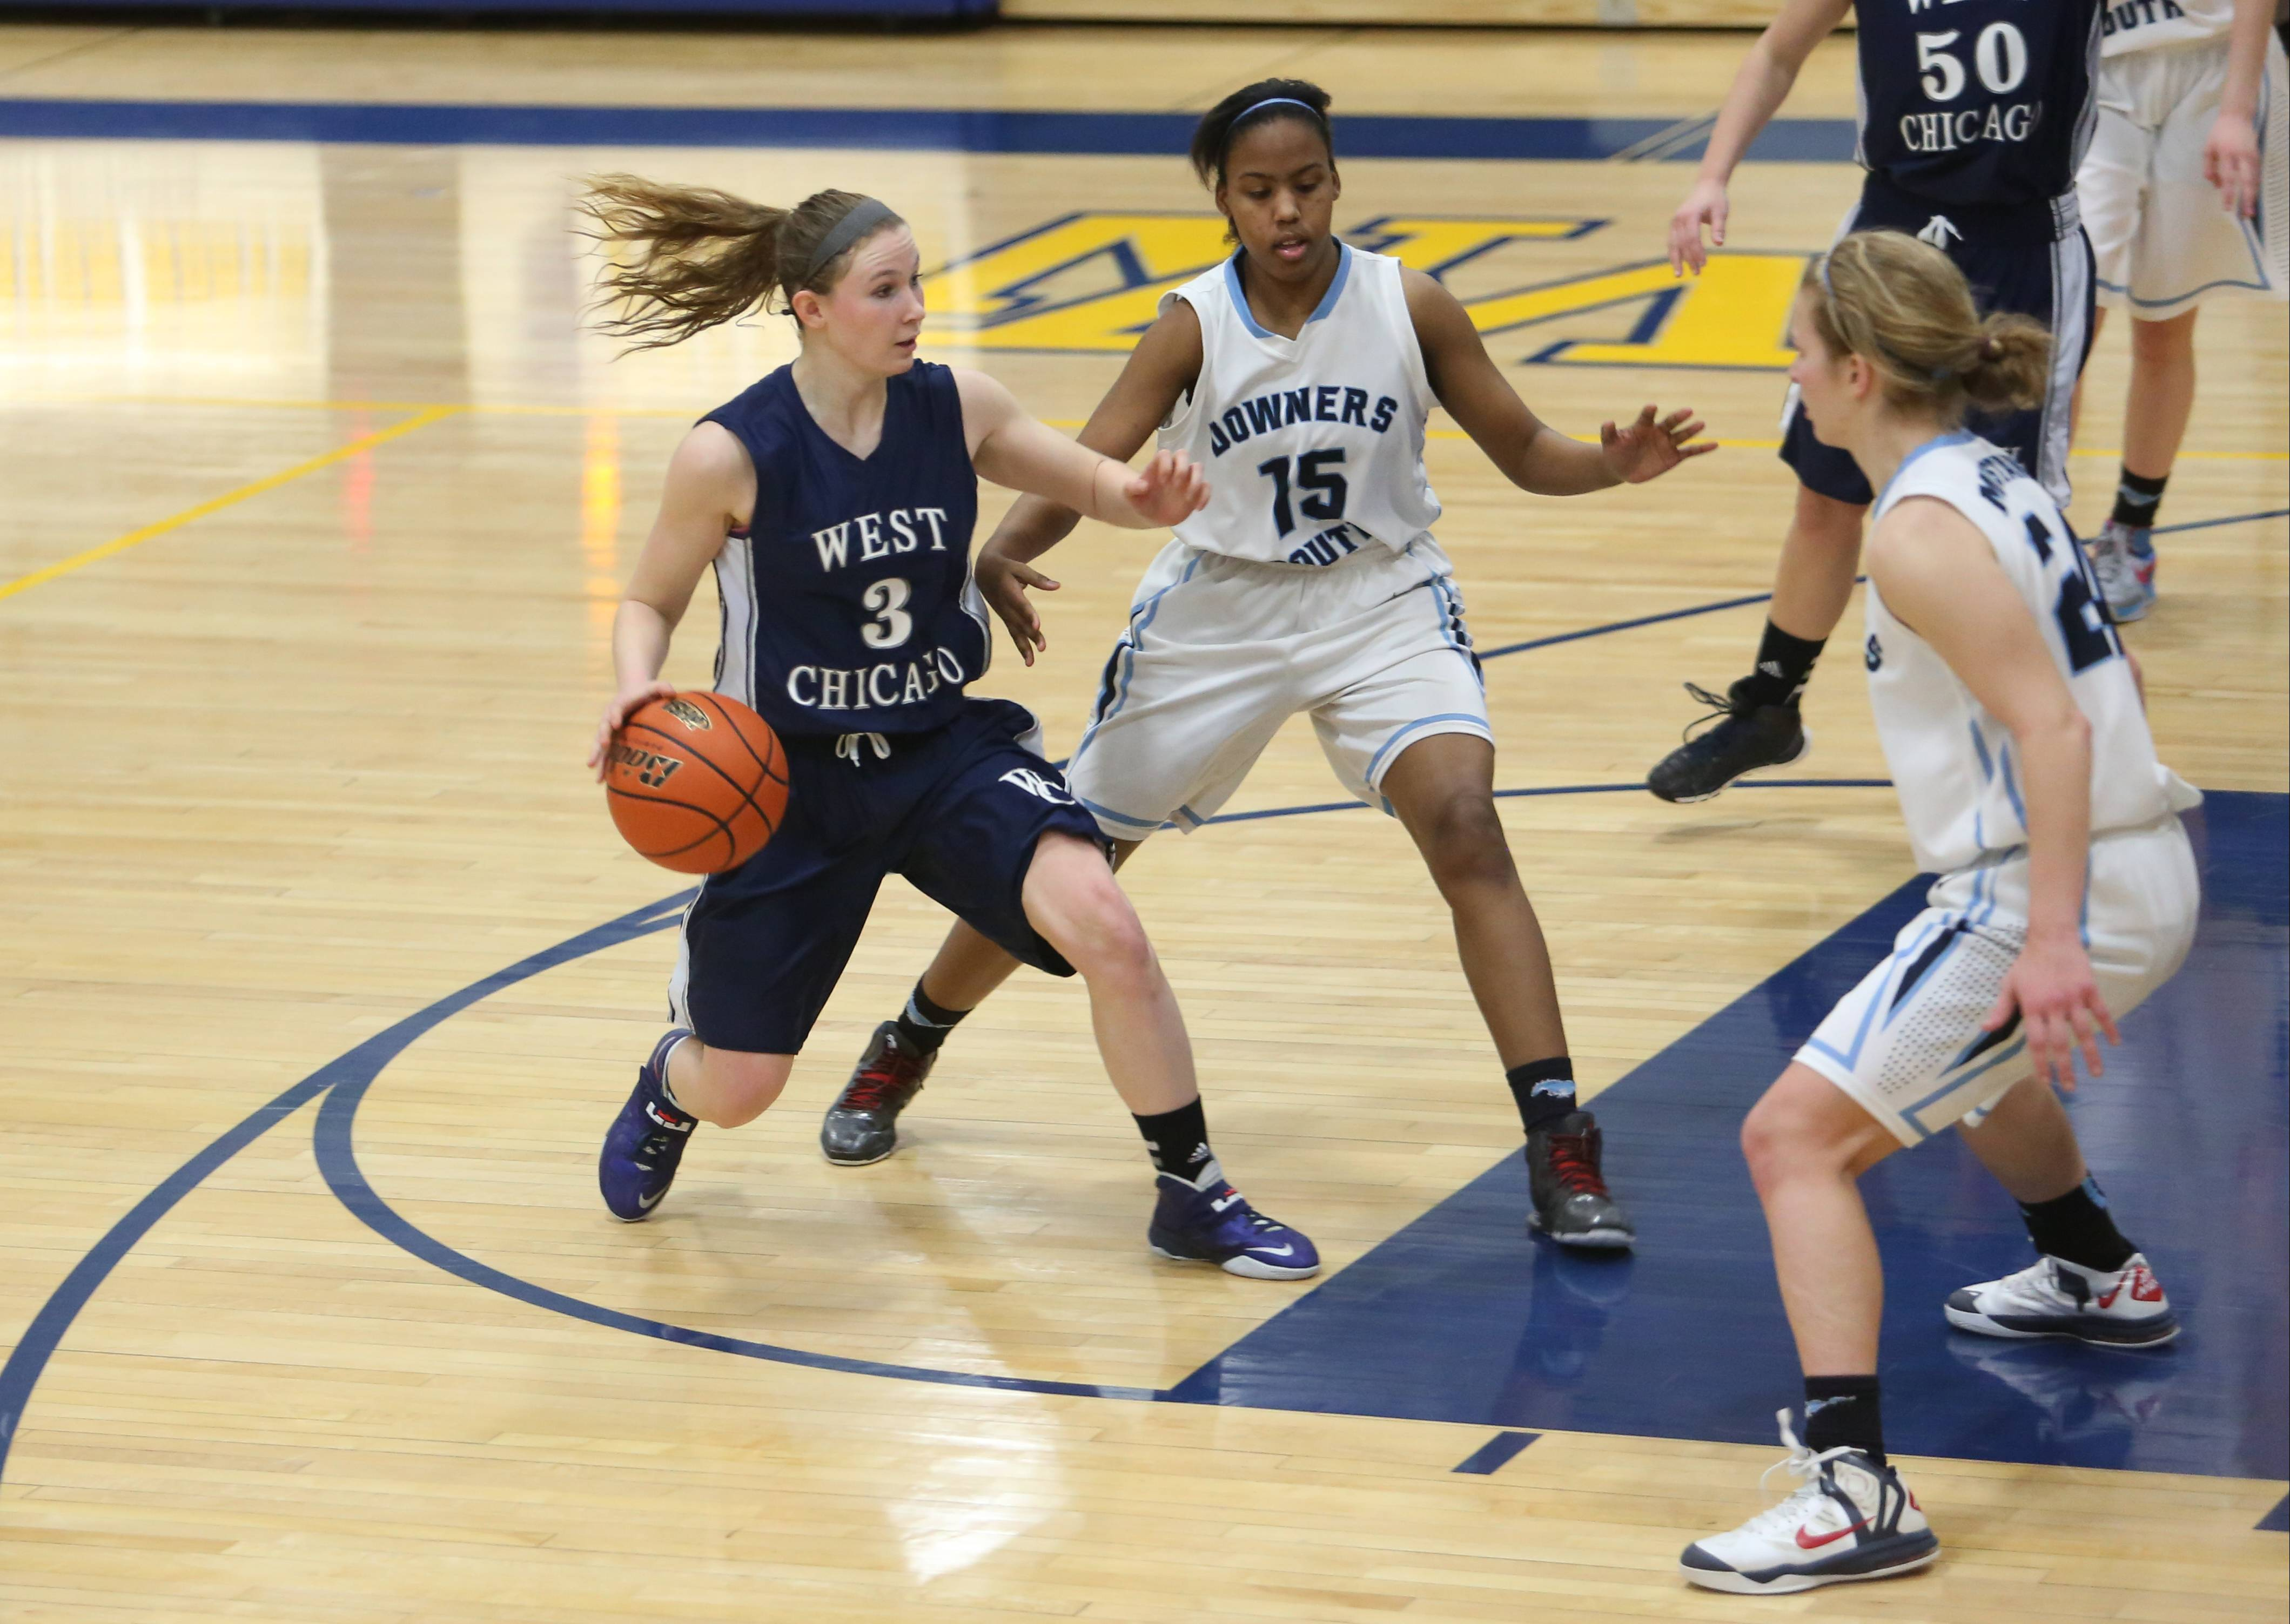 Images: West Chicago vs. Downers Grove South girls basketball